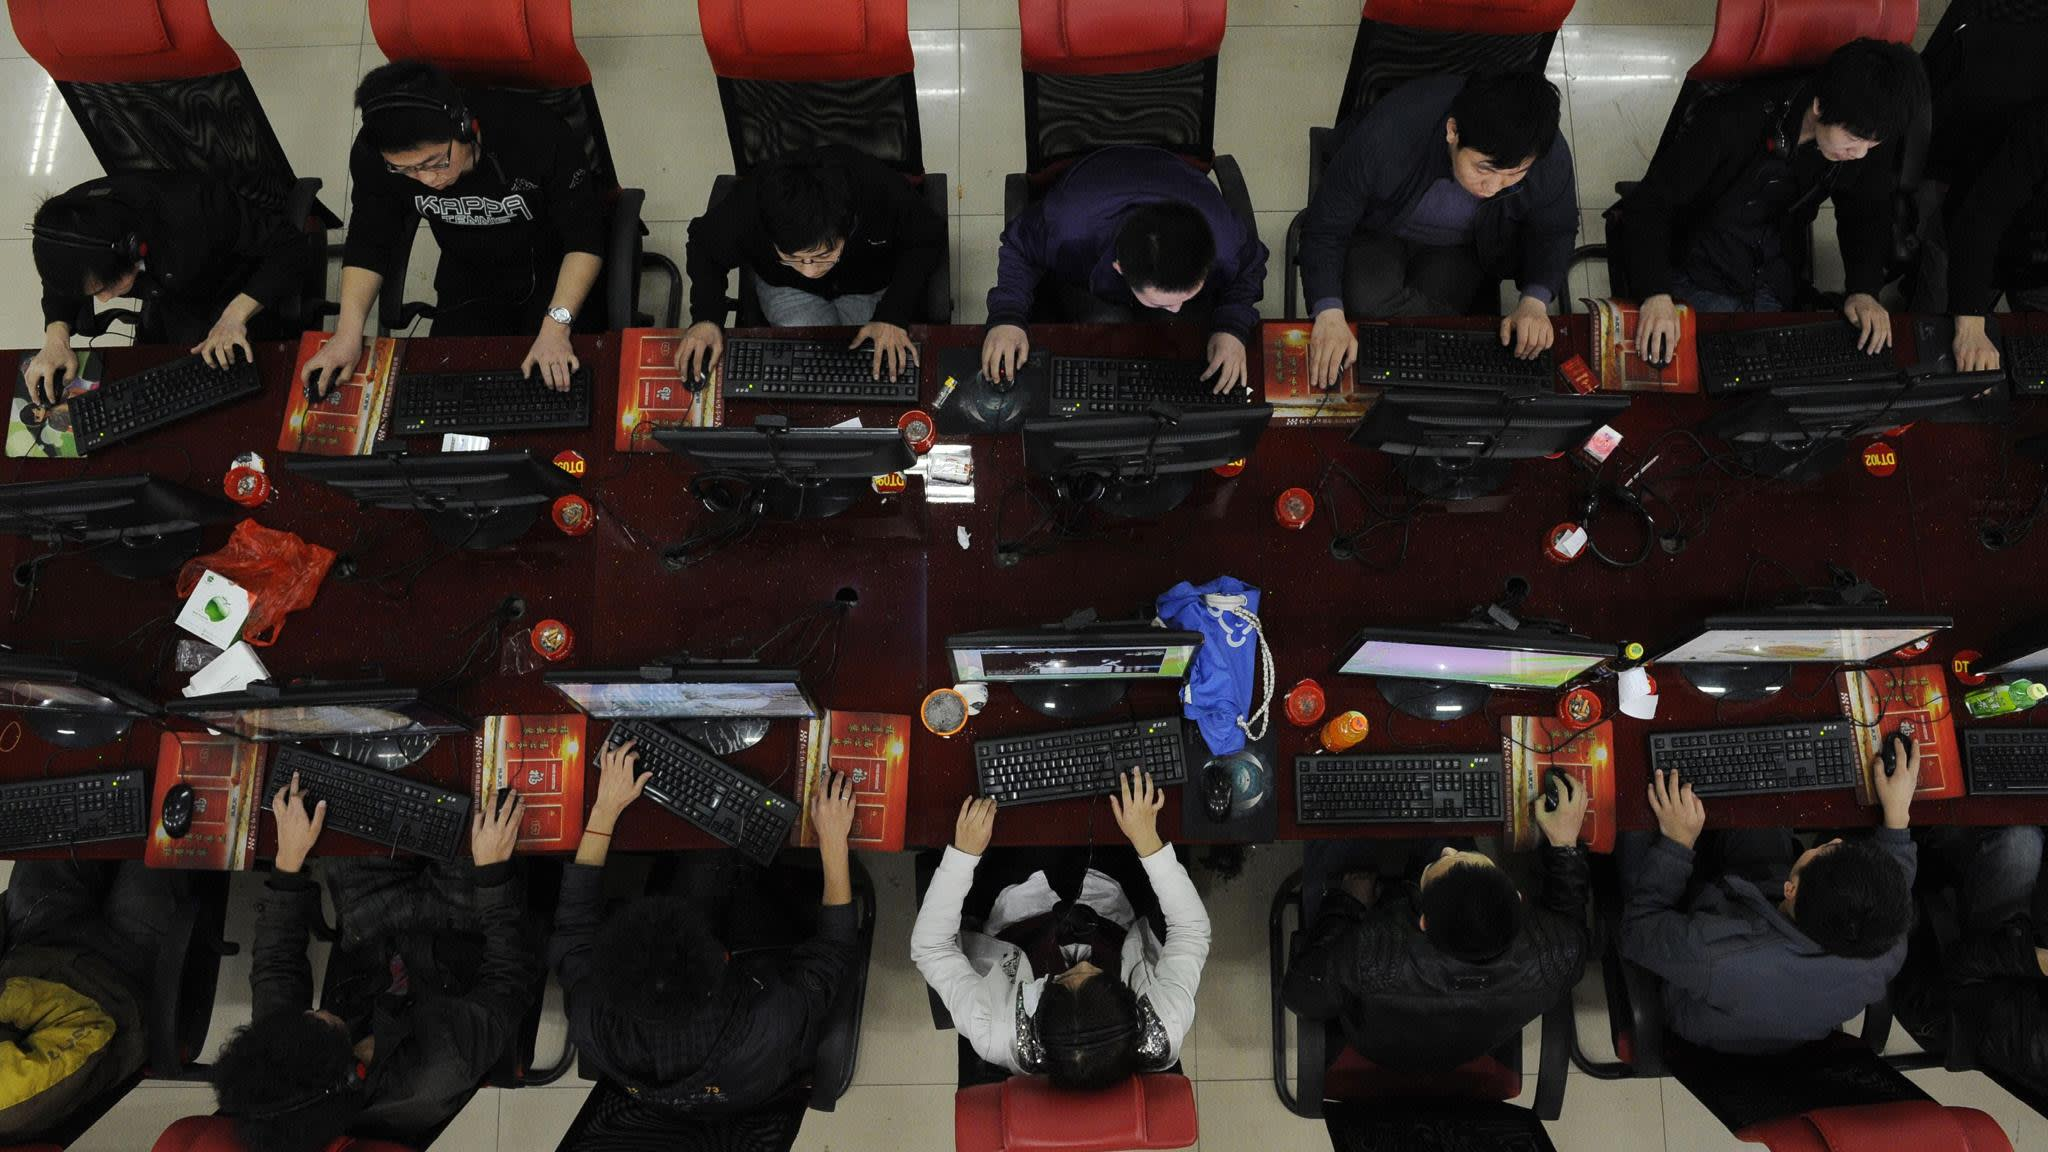 Renren fails to keep pace in race for China's smartphone users | Financial Times